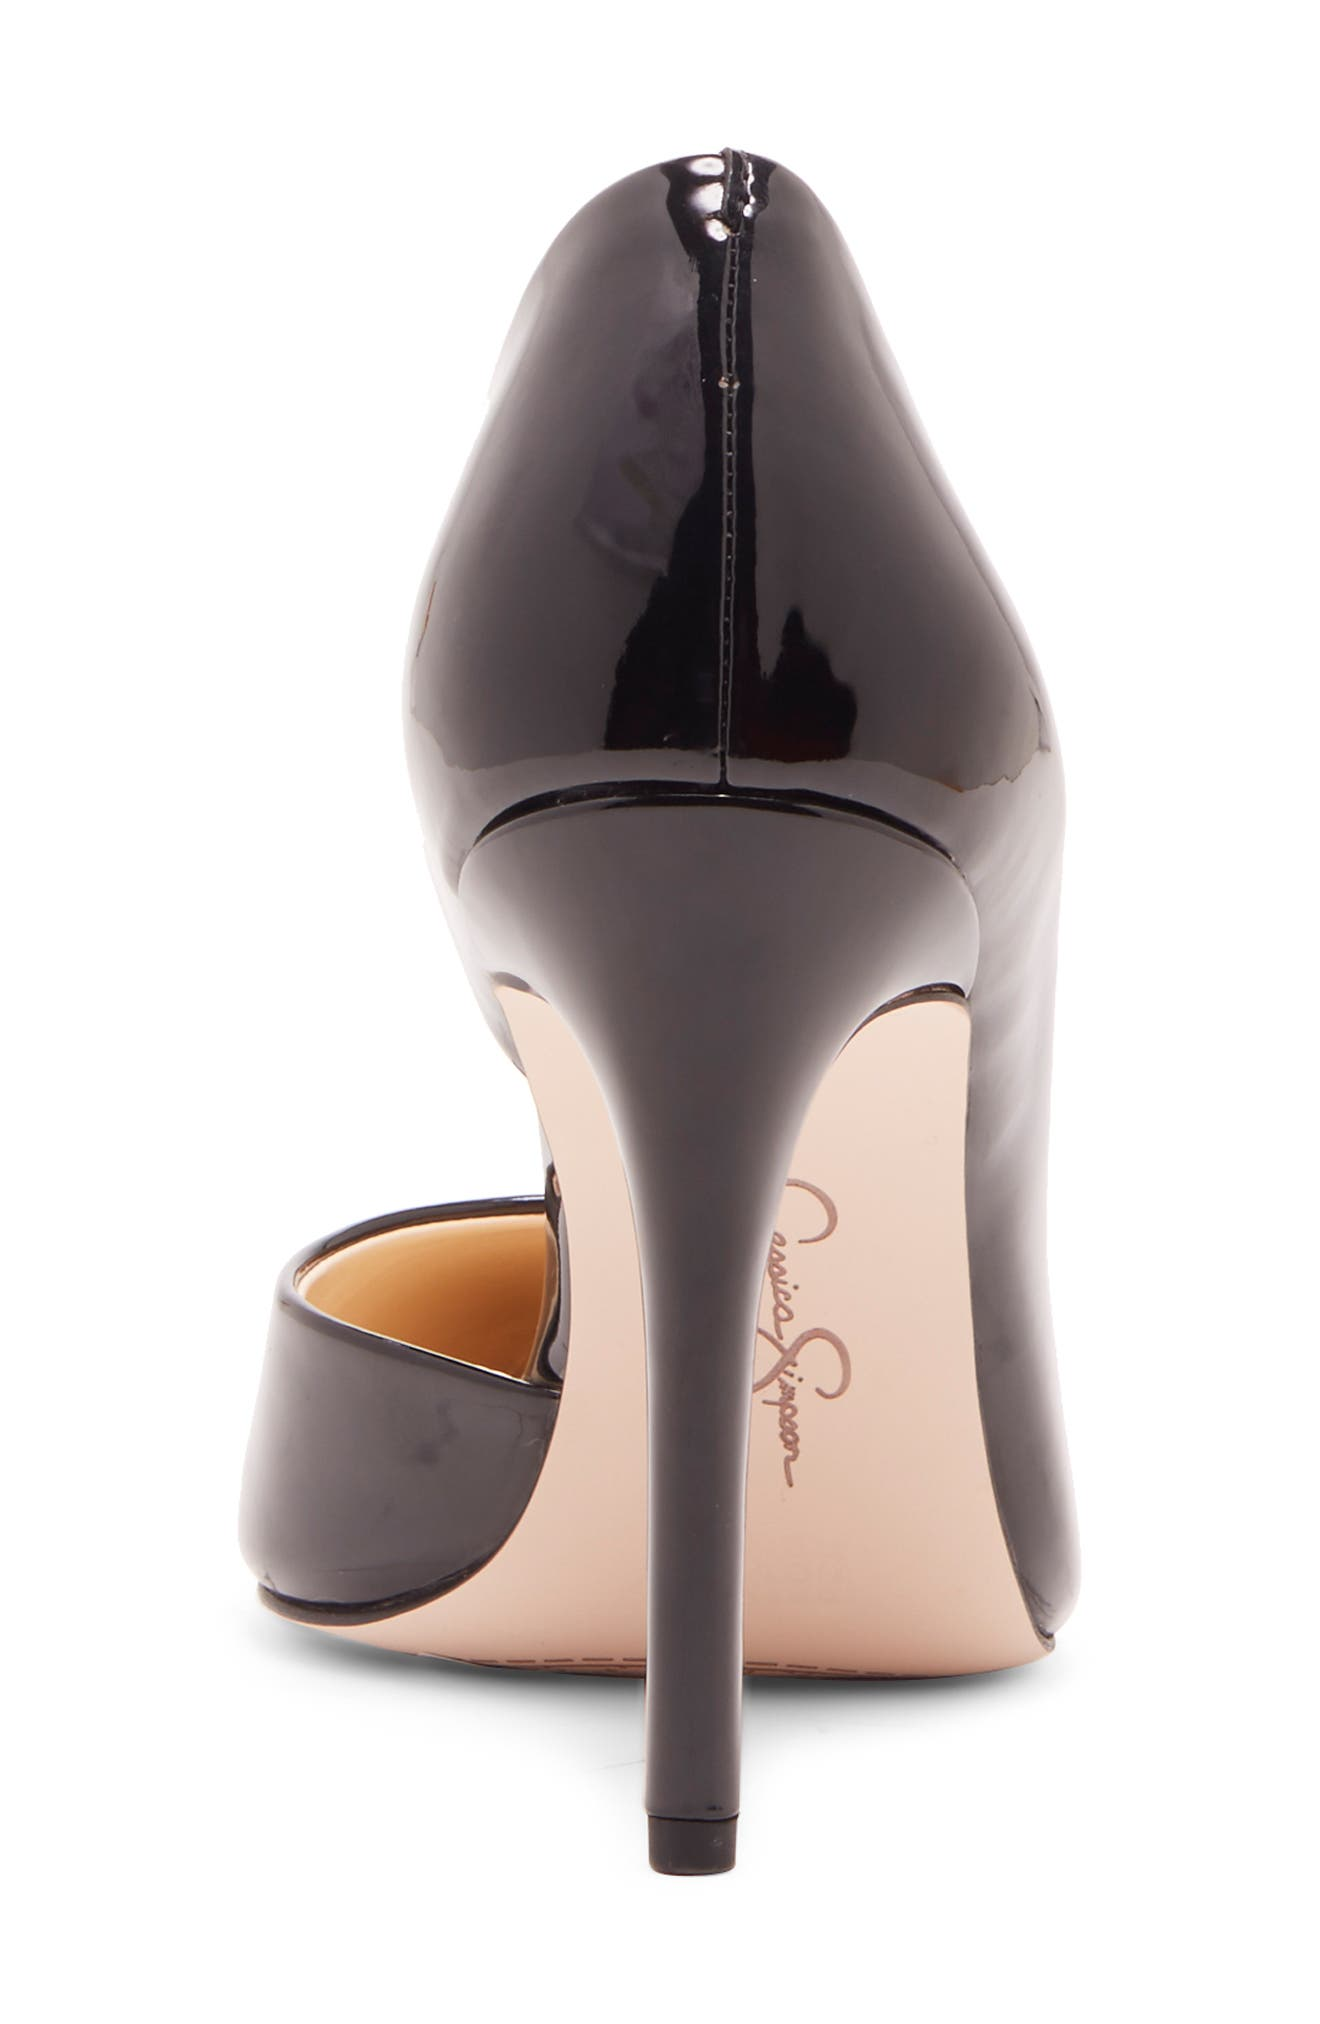 JESSICA SIMPSON, Prizma Half-d'Orsay Pump, Alternate thumbnail 2, color, BLACK